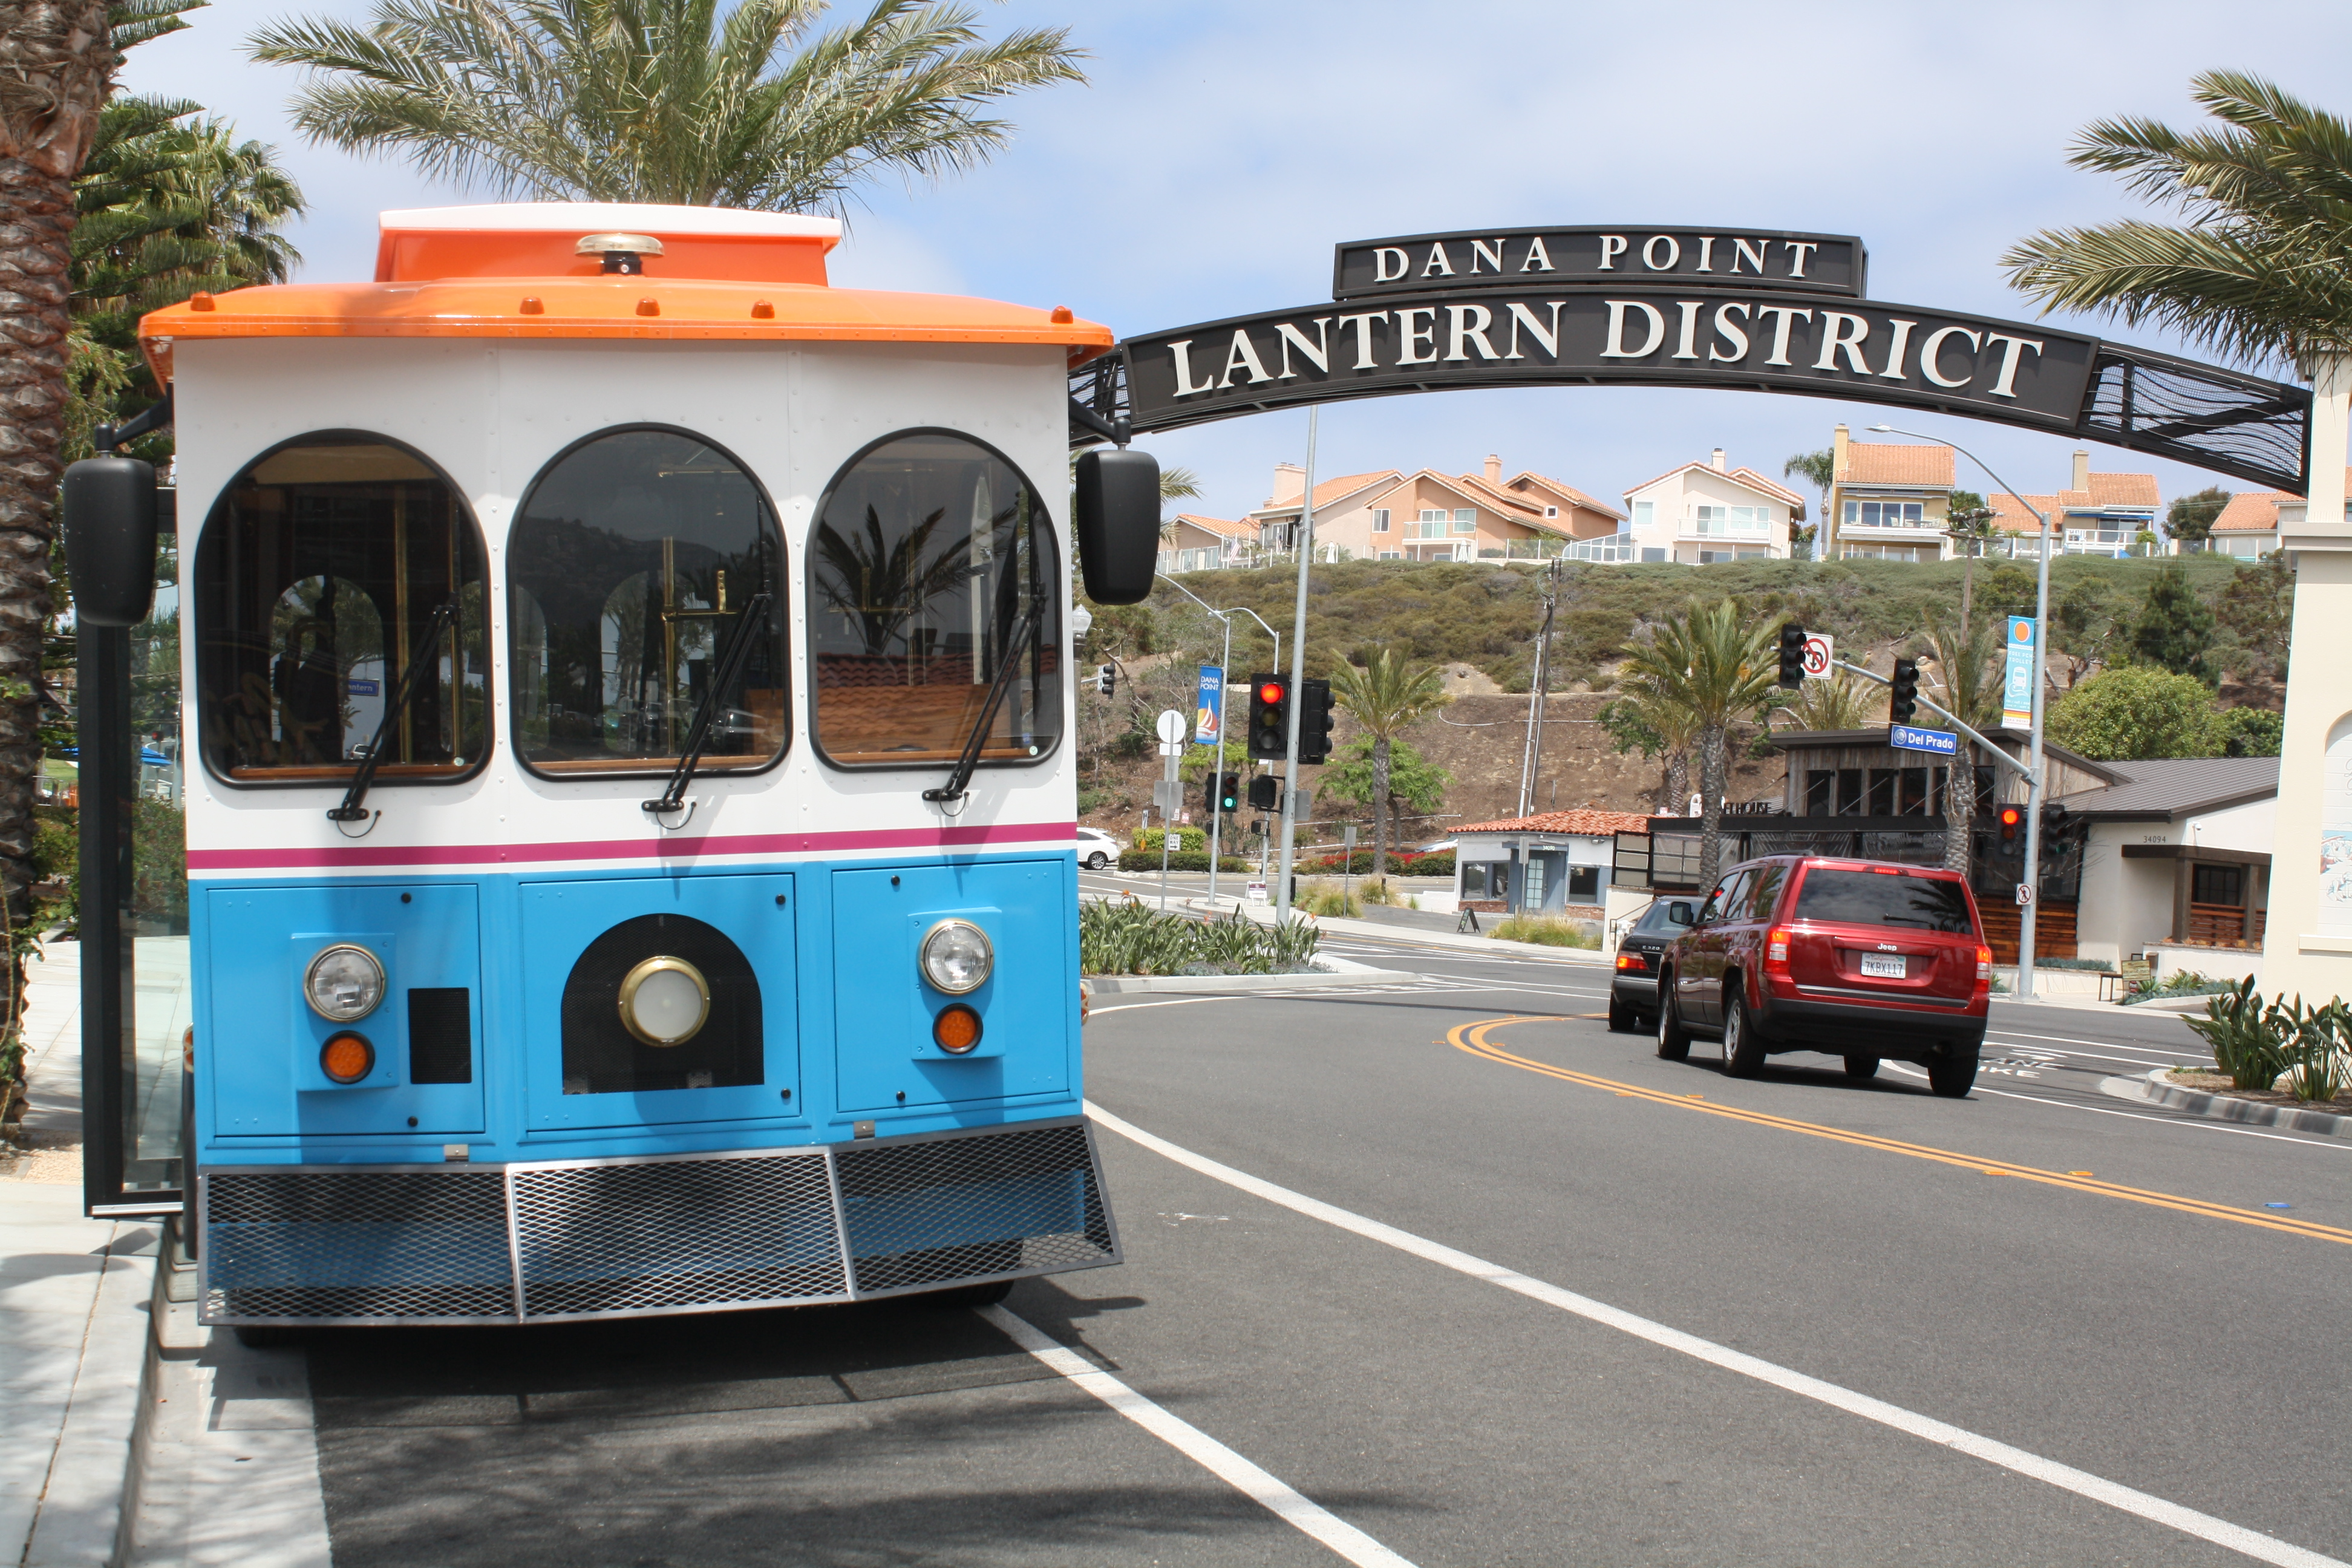 The new open-air trolley was unveiled by city officials on Wednesday. Photo: Kristina Pritchett